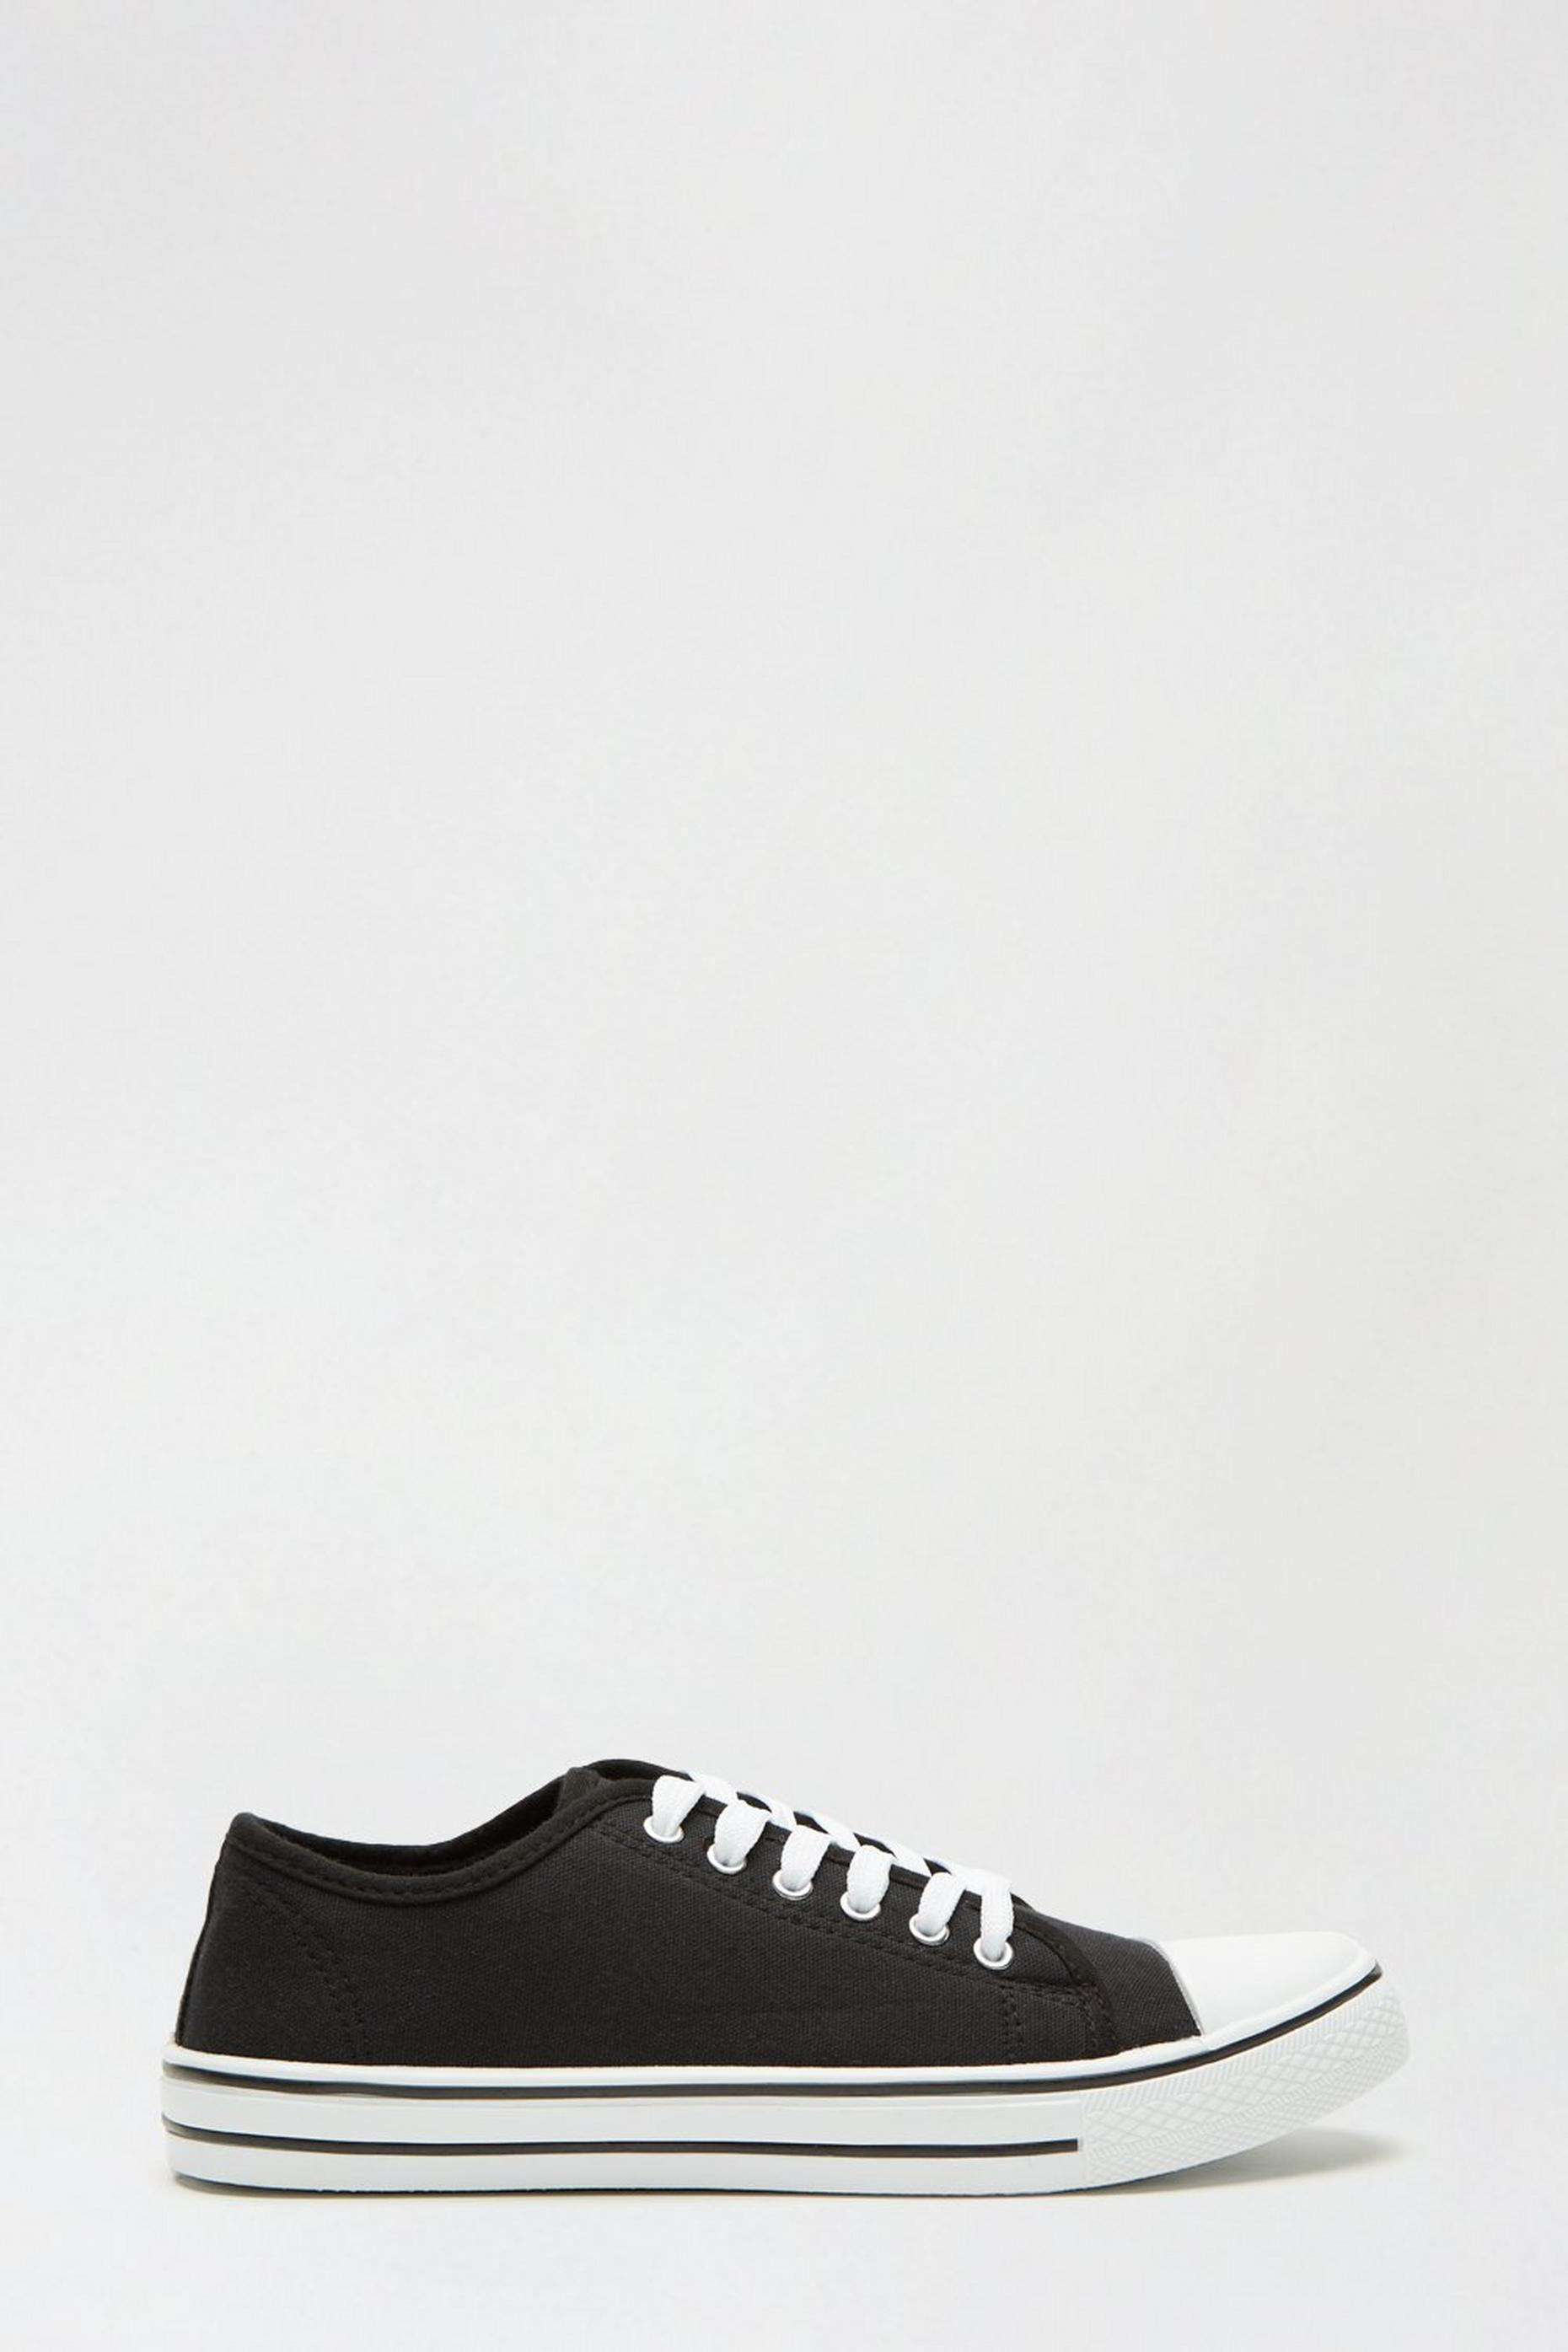 Black India Canvas Lace Up Trainer